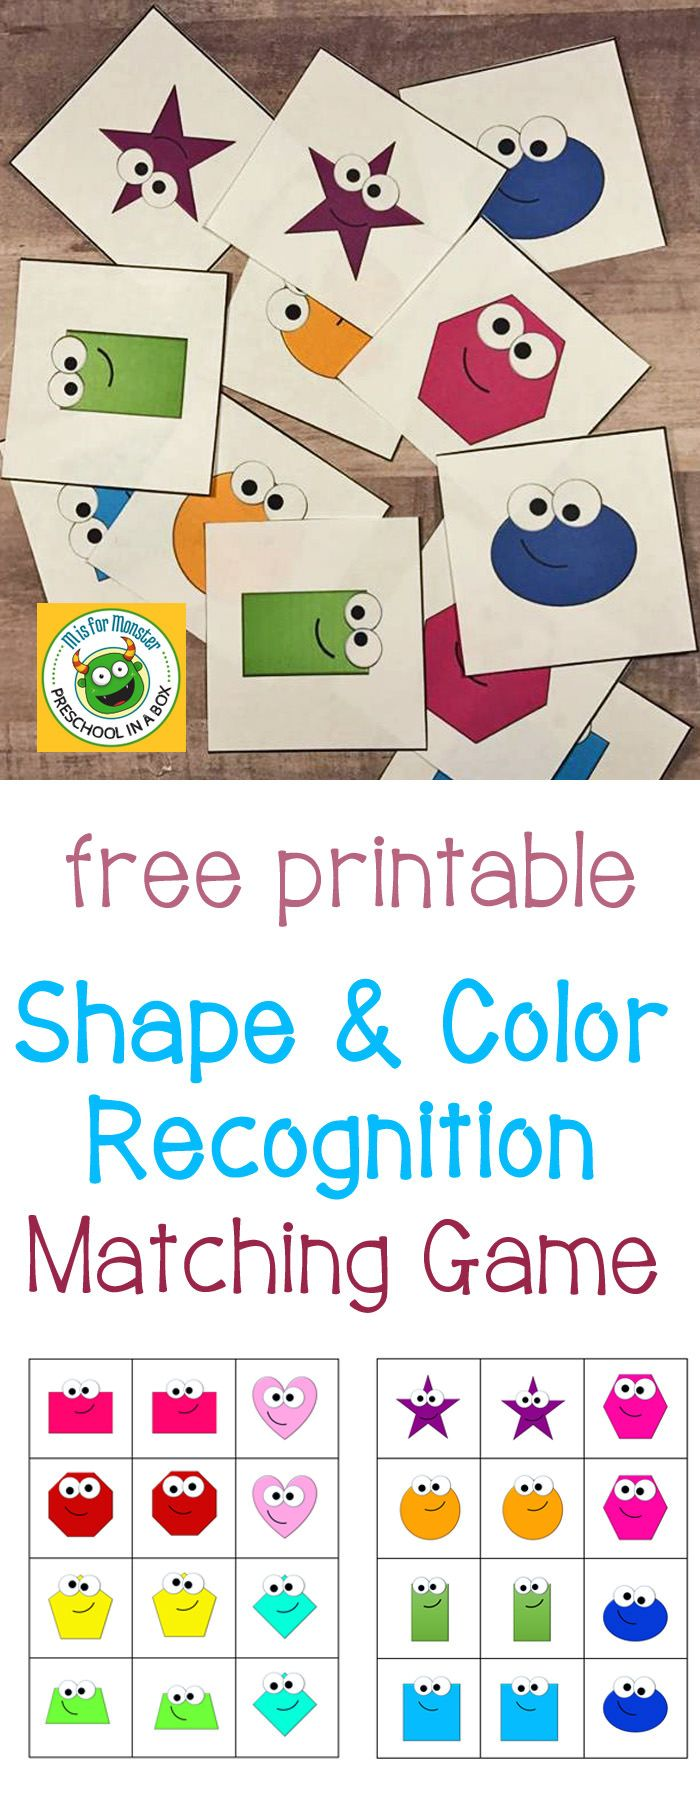 Shape and Color Recognition Matching Game Free Printable | Pinterest ...